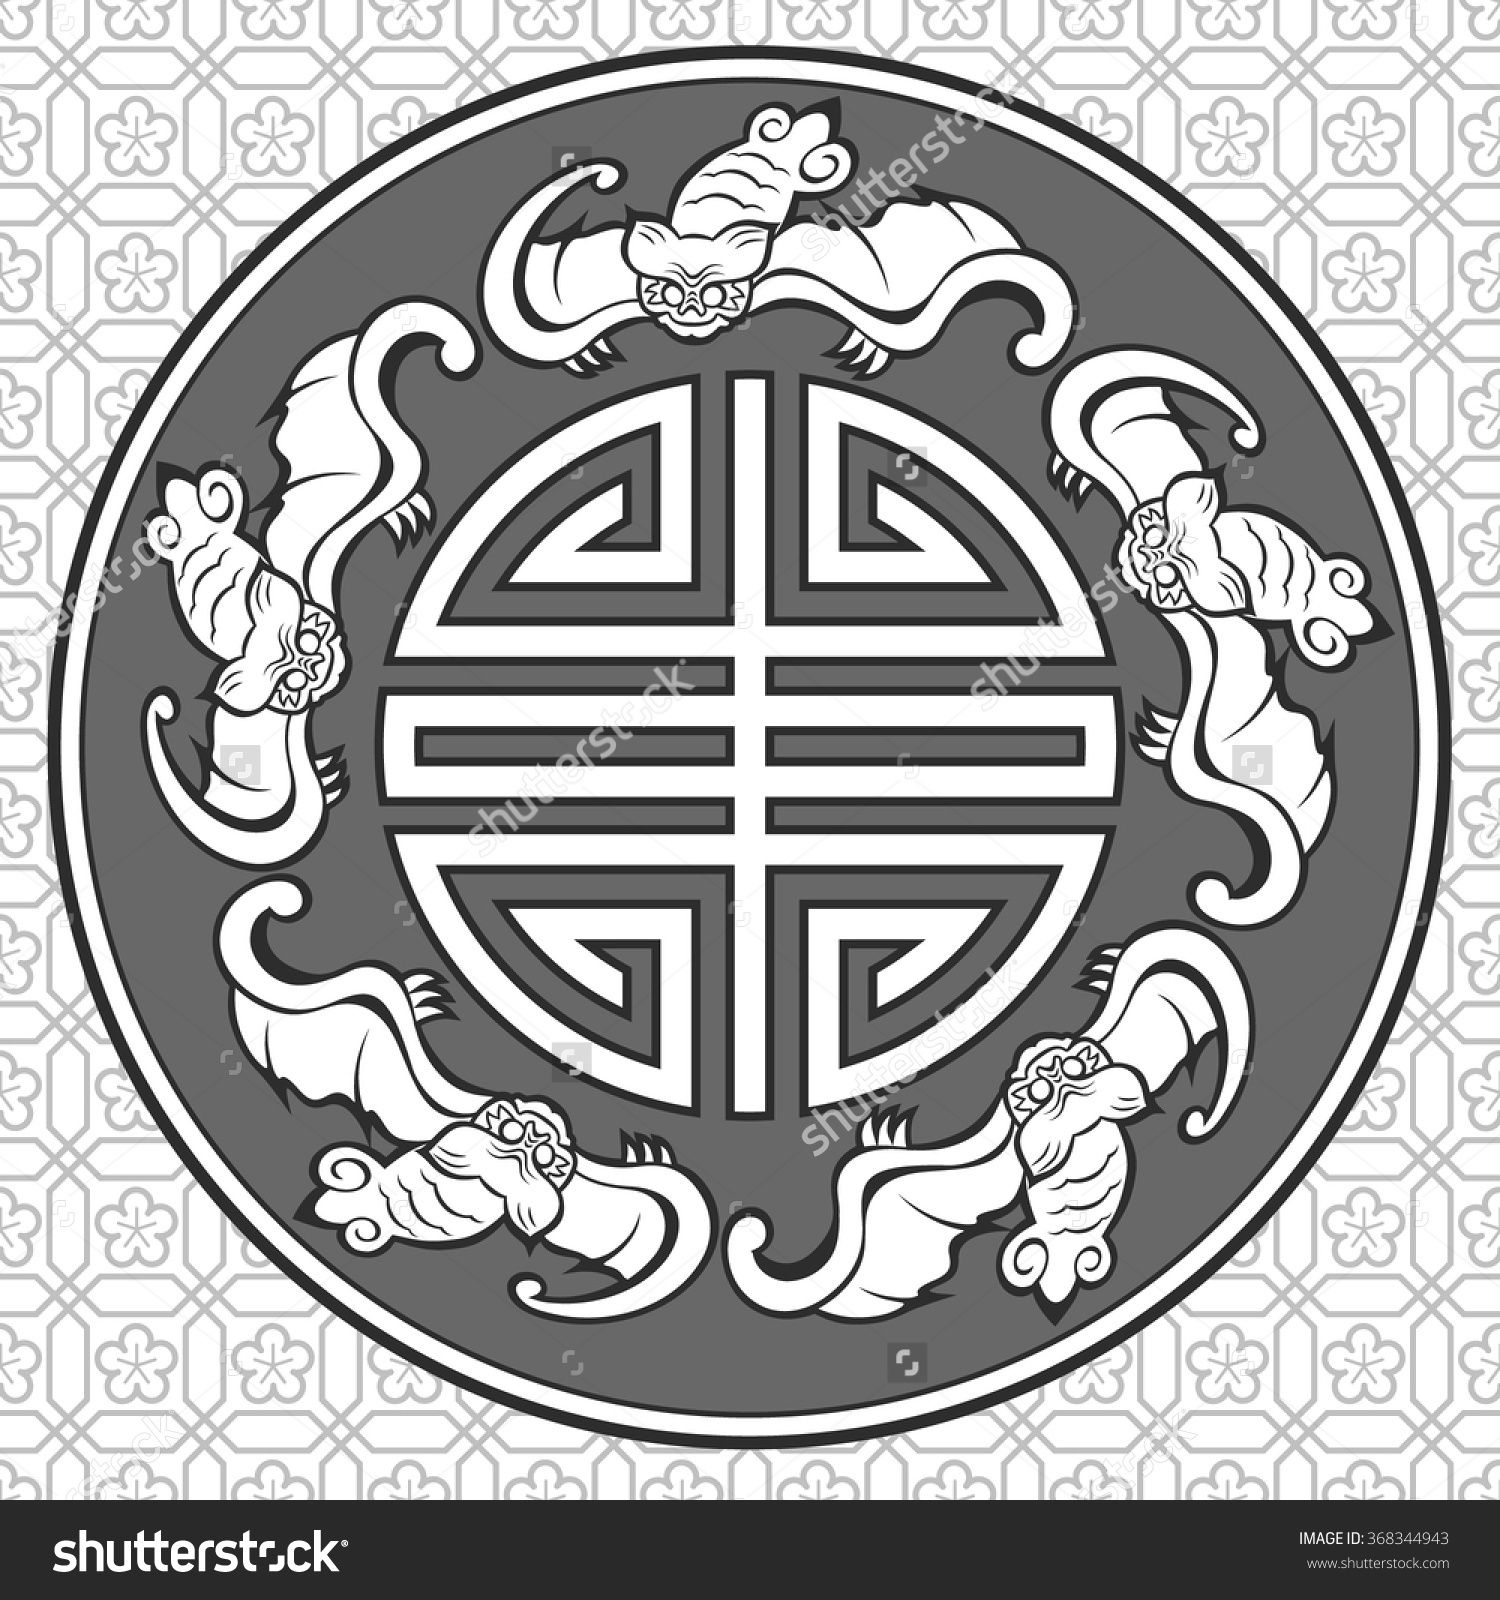 Seamless chinese pattern of five blessings longevity and lucky seamless chinese pattern of five blessings longevity and lucky and bat symbols buycottarizona